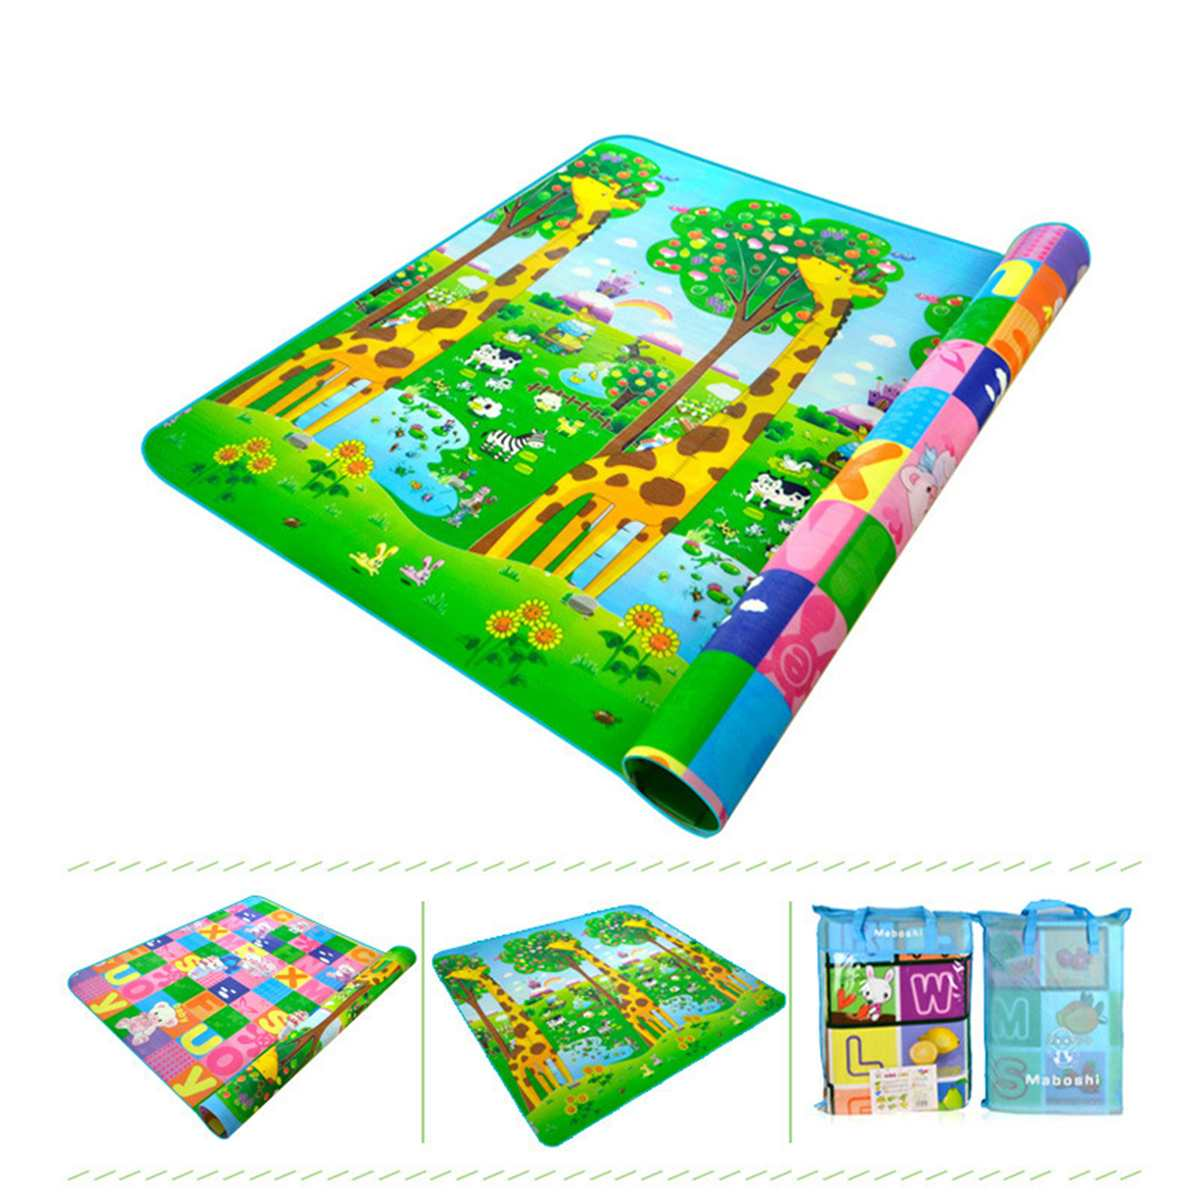 Non-Woven Baby Kids Crawling Mat Blanket Double Side Gym Play Mat Educational Soft Foam Picnic Carpet Activity Gear 2*1.8MNon-Woven Baby Kids Crawling Mat Blanket Double Side Gym Play Mat Educational Soft Foam Picnic Carpet Activity Gear 2*1.8M